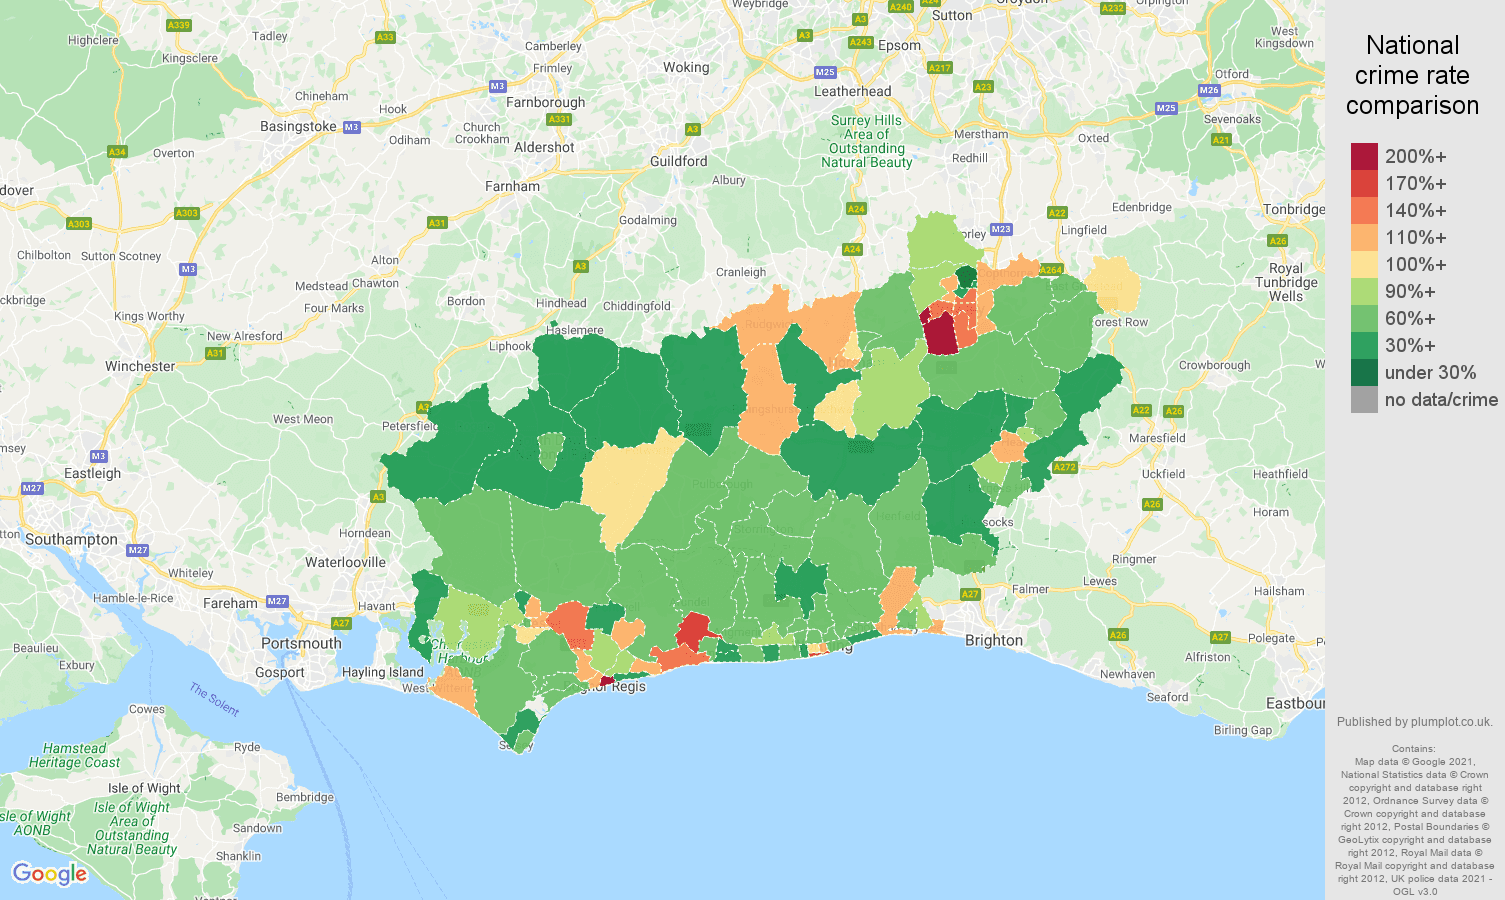 West Sussex antisocial behaviour crime rate comparison map